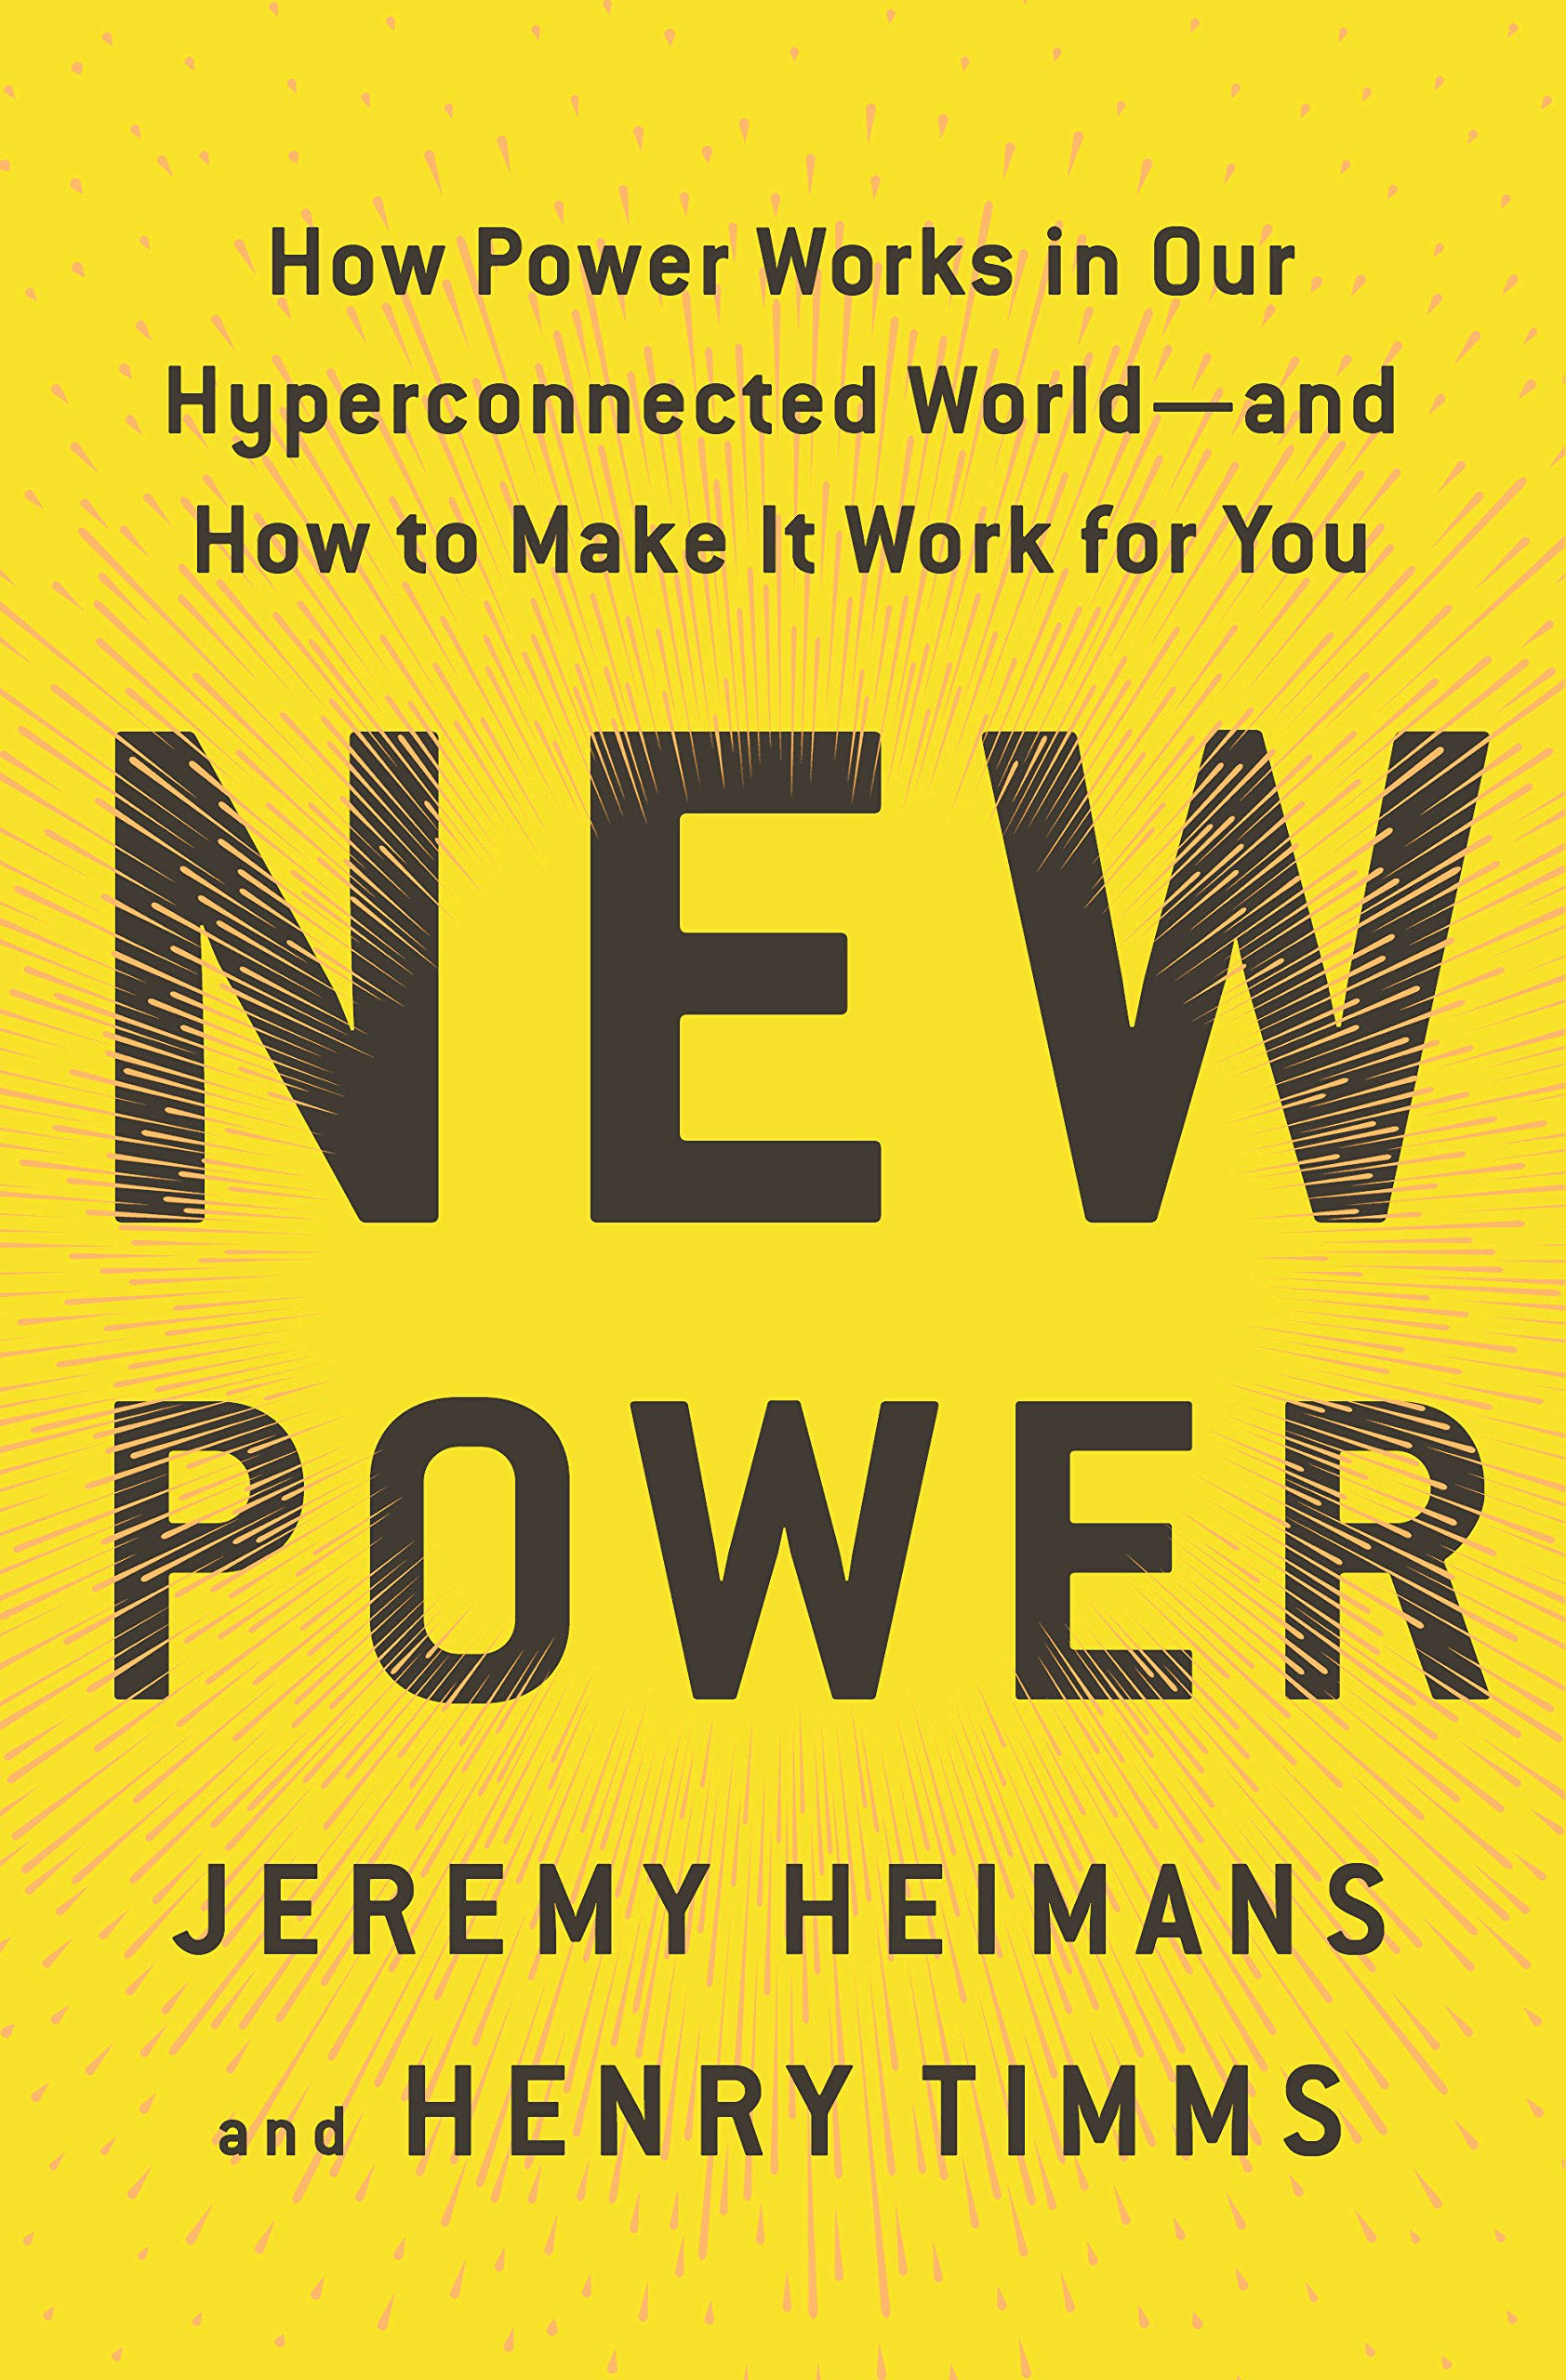 Jeremy Heimans andHenry Timms – New Power